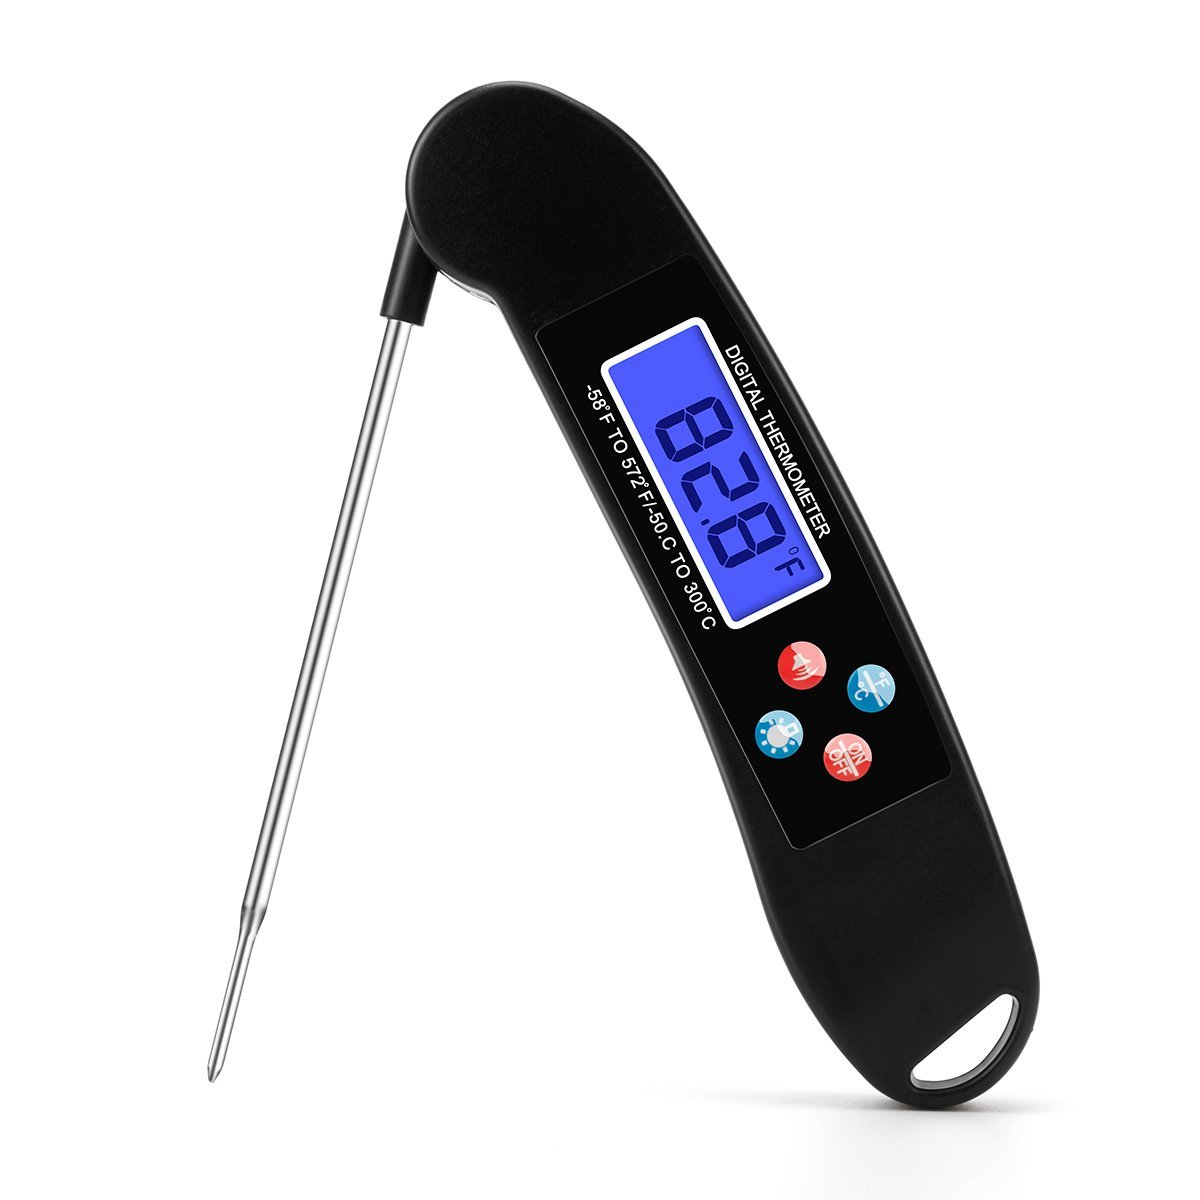 Heat clipart meat thermometer #11